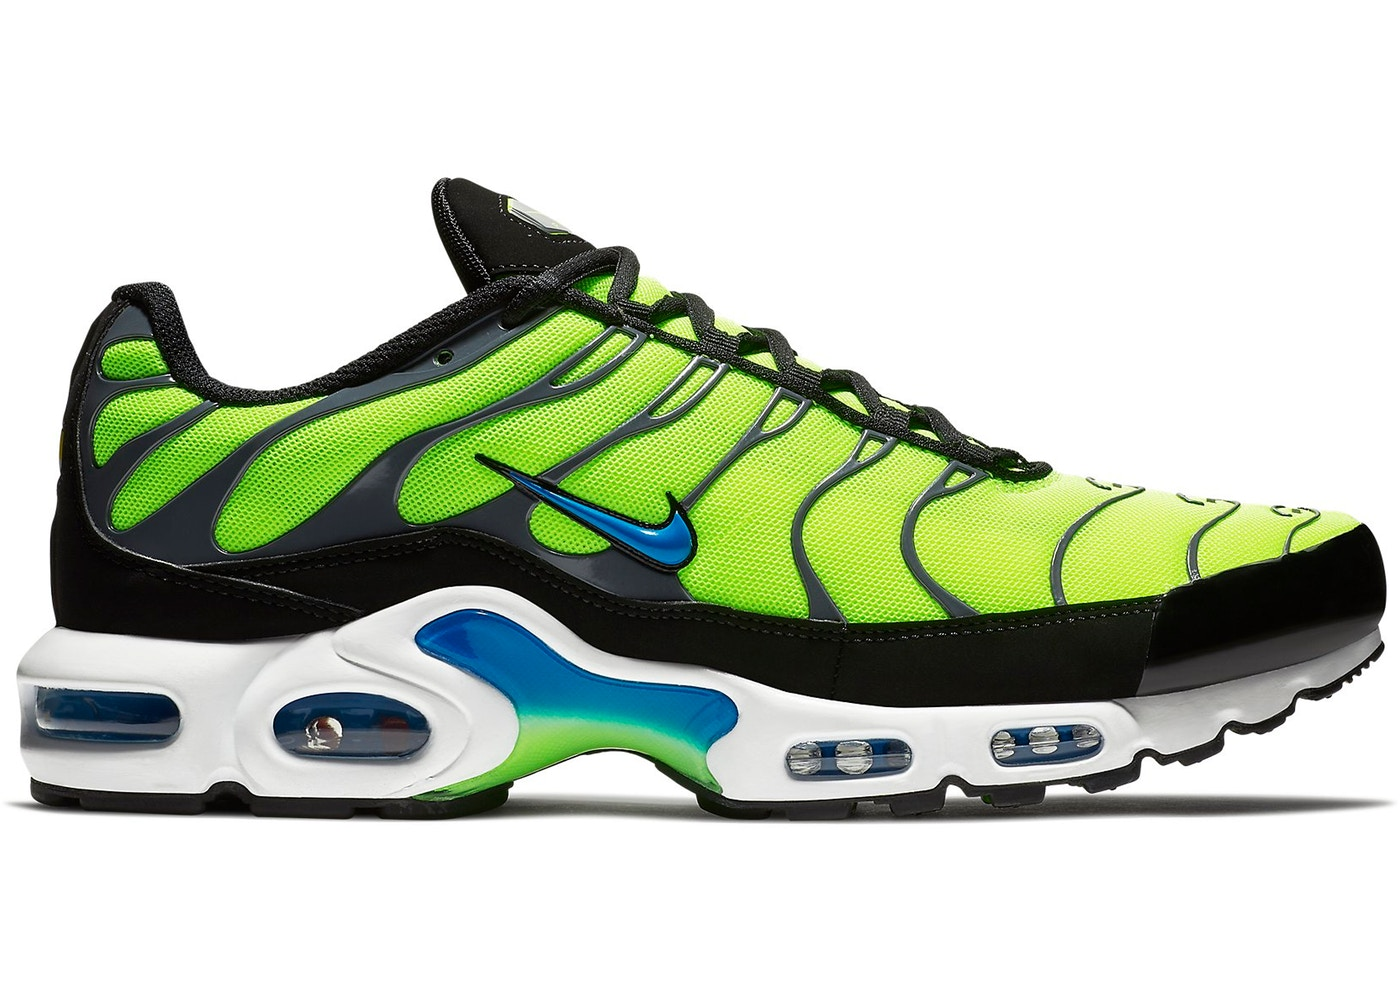 Air Max Plus Scream Green 852630 700